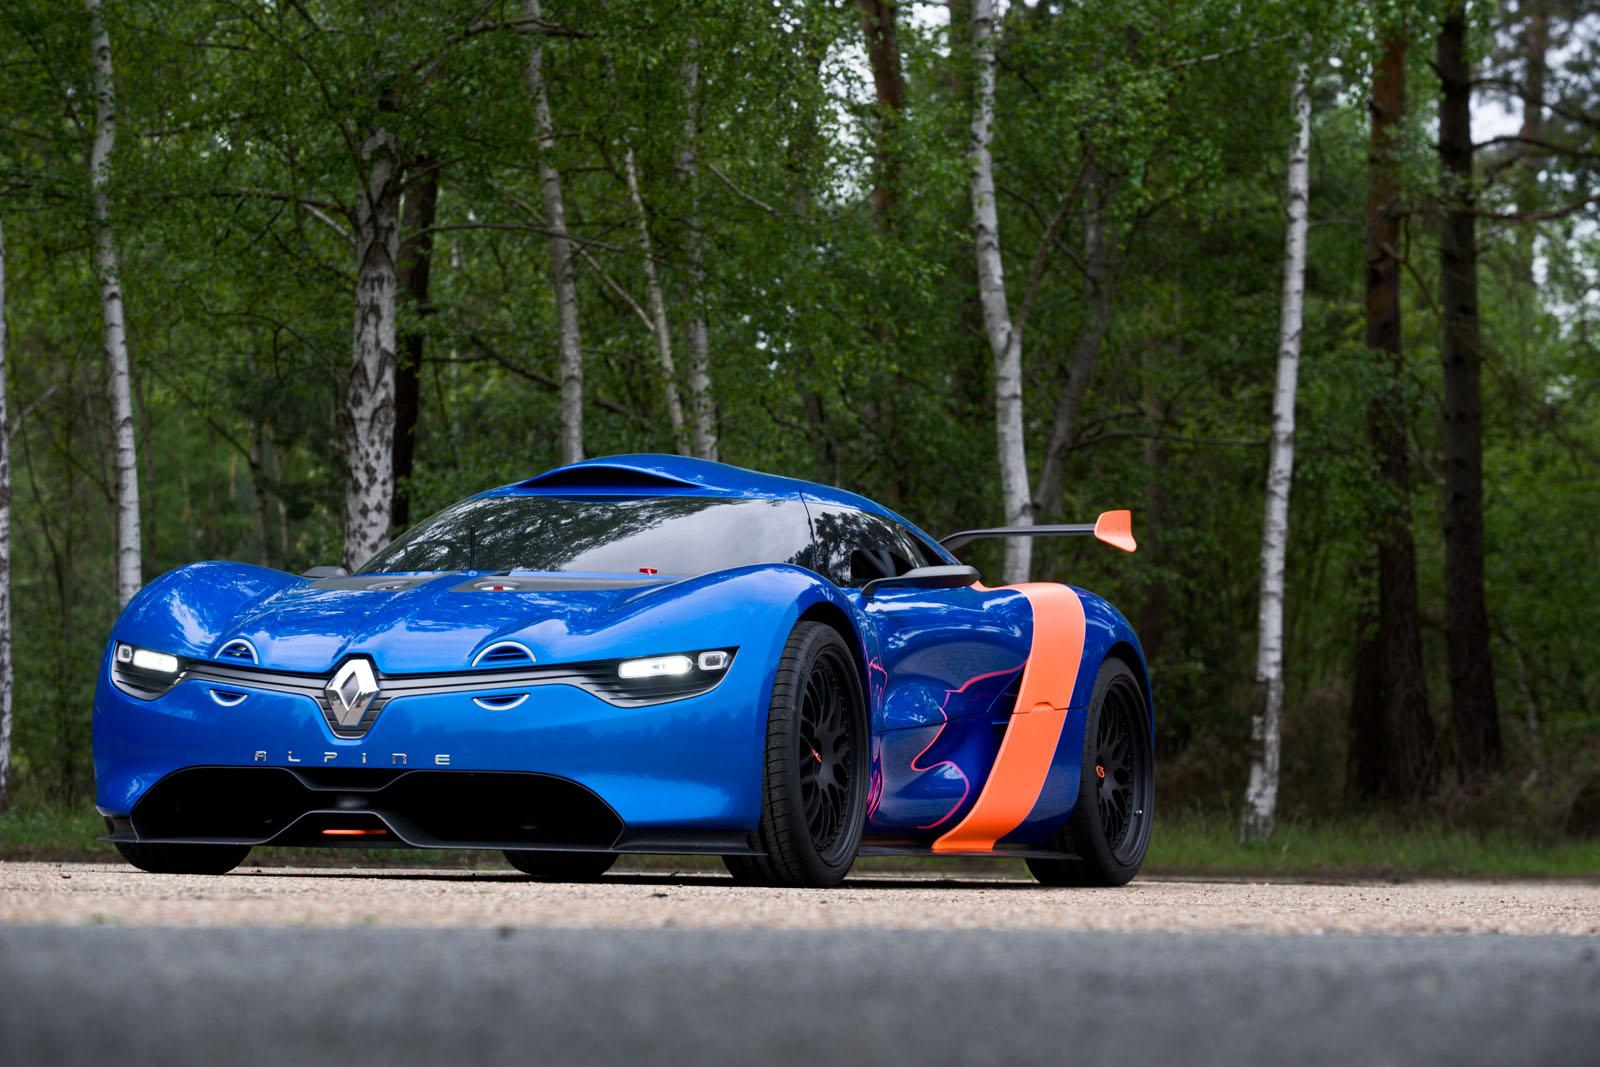 Renault Alpine concept might be revealed in June at Le Mans